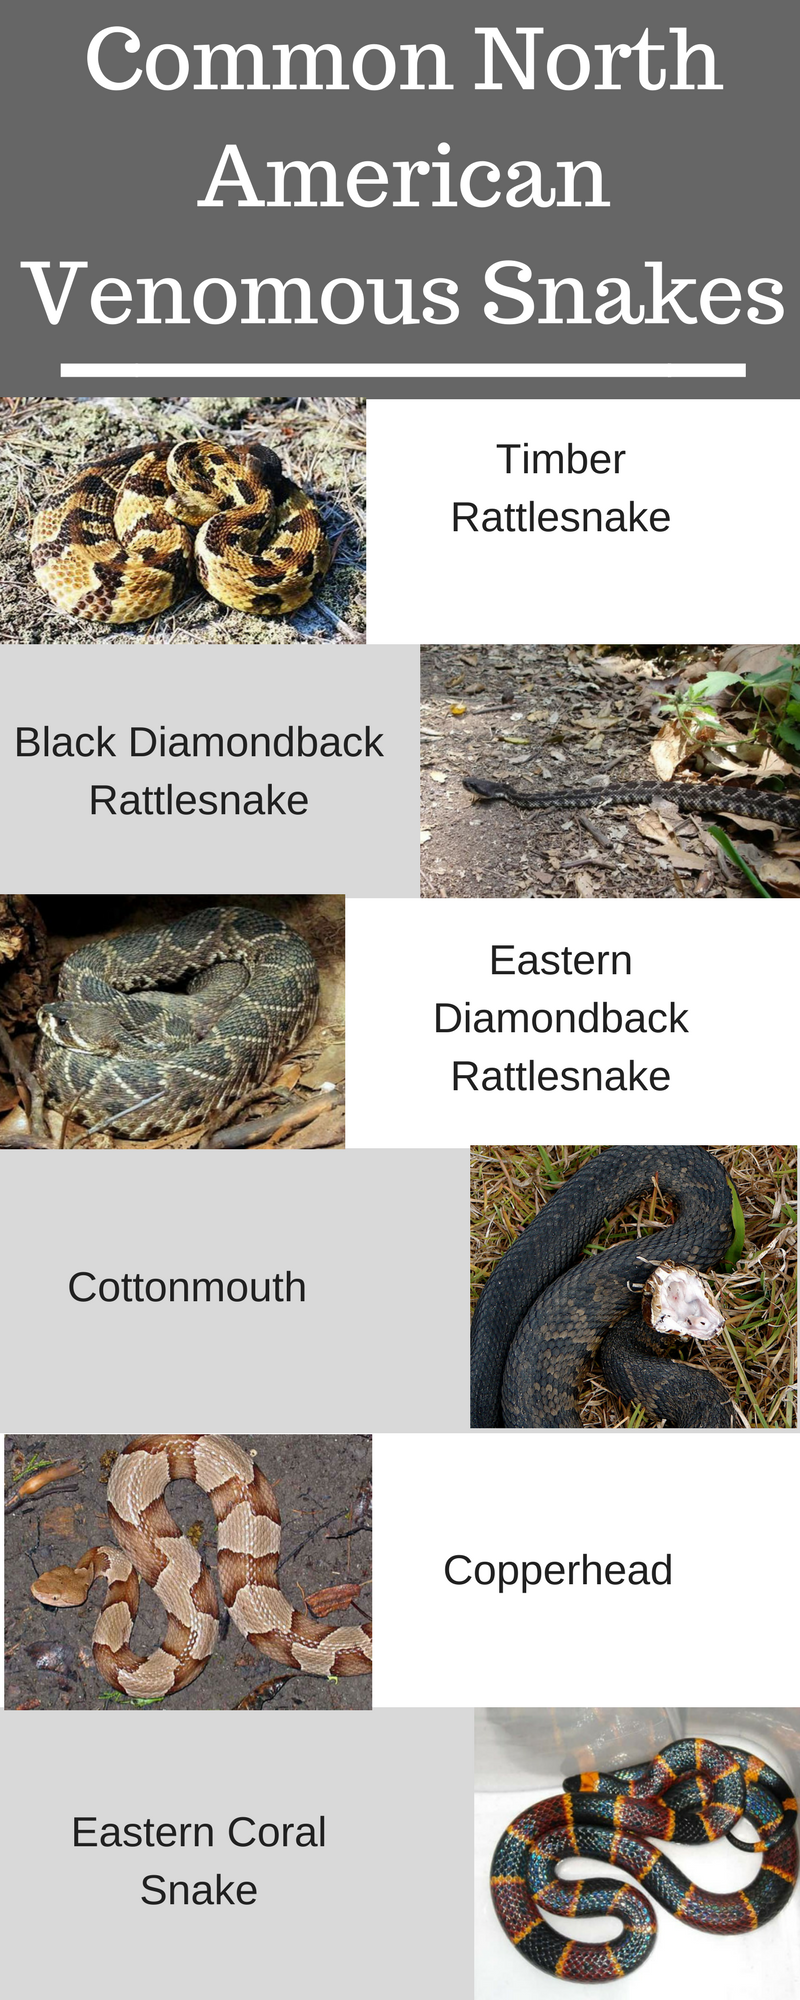 Common North American Venomous Snakes.png